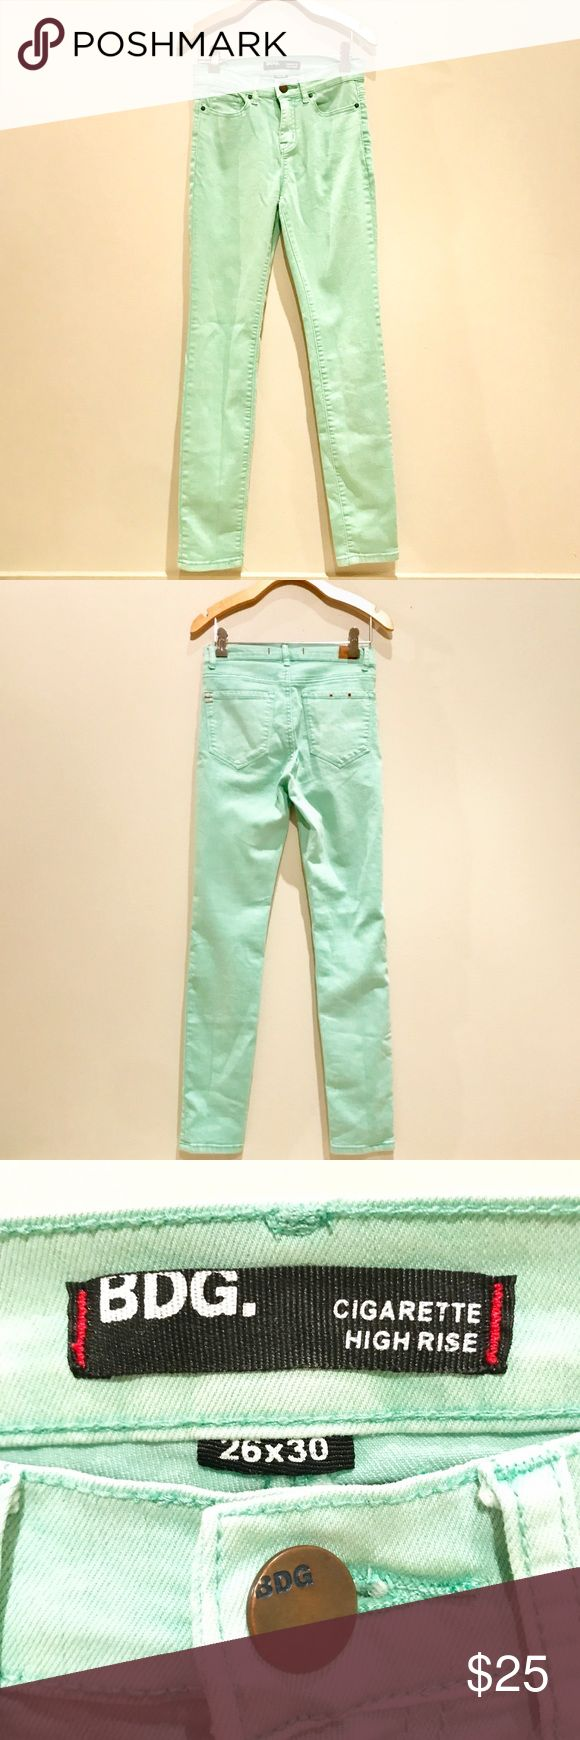 """BDG Cigarette High Rise Mint Jeans Mint green BDG cigarette high rise jeans. Size- Women's 26. Flat Measurements- 13.5"""" waist, 9.5"""" rise 30"""" inseam. Material- 70% cotton 20% polyester 2% spandex. Excellent used condition, only worn a few times! Urban Outfitters Jeans"""